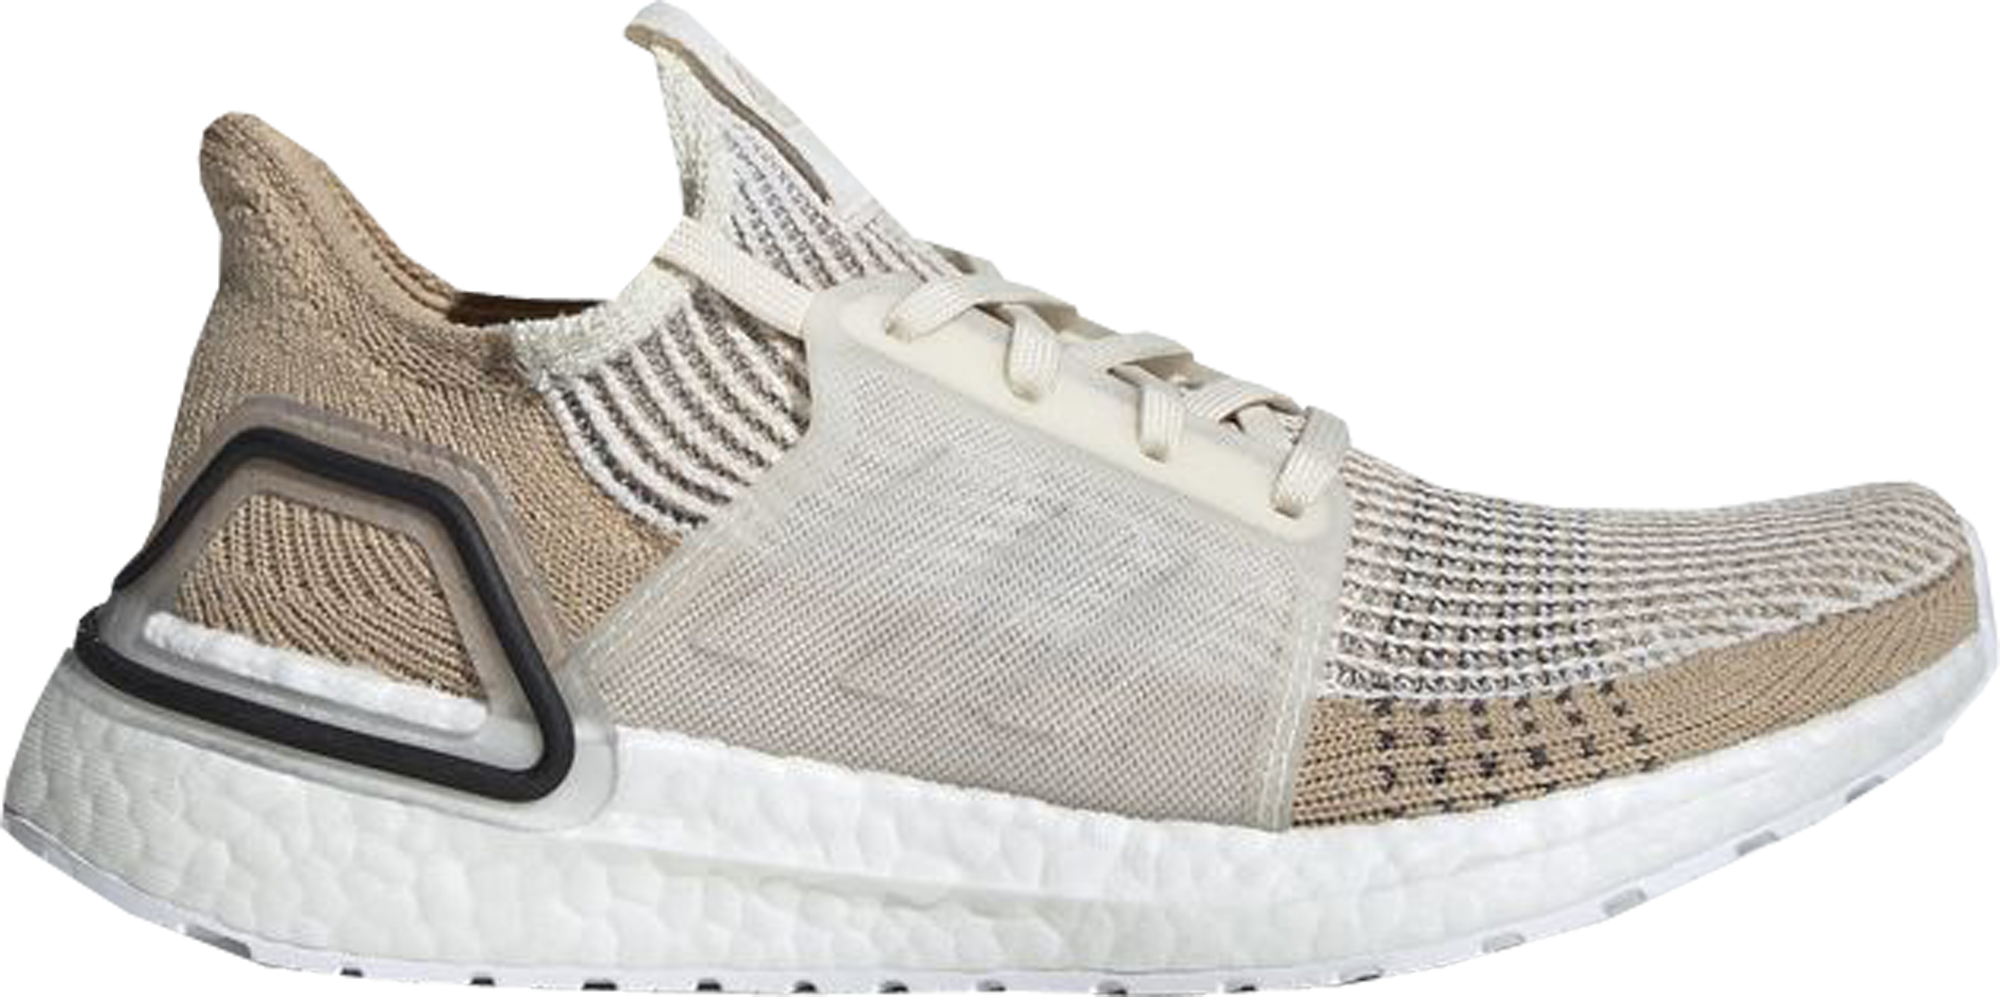 adidas Ultra Boost 2019 Chalk White Pale Nude (W)